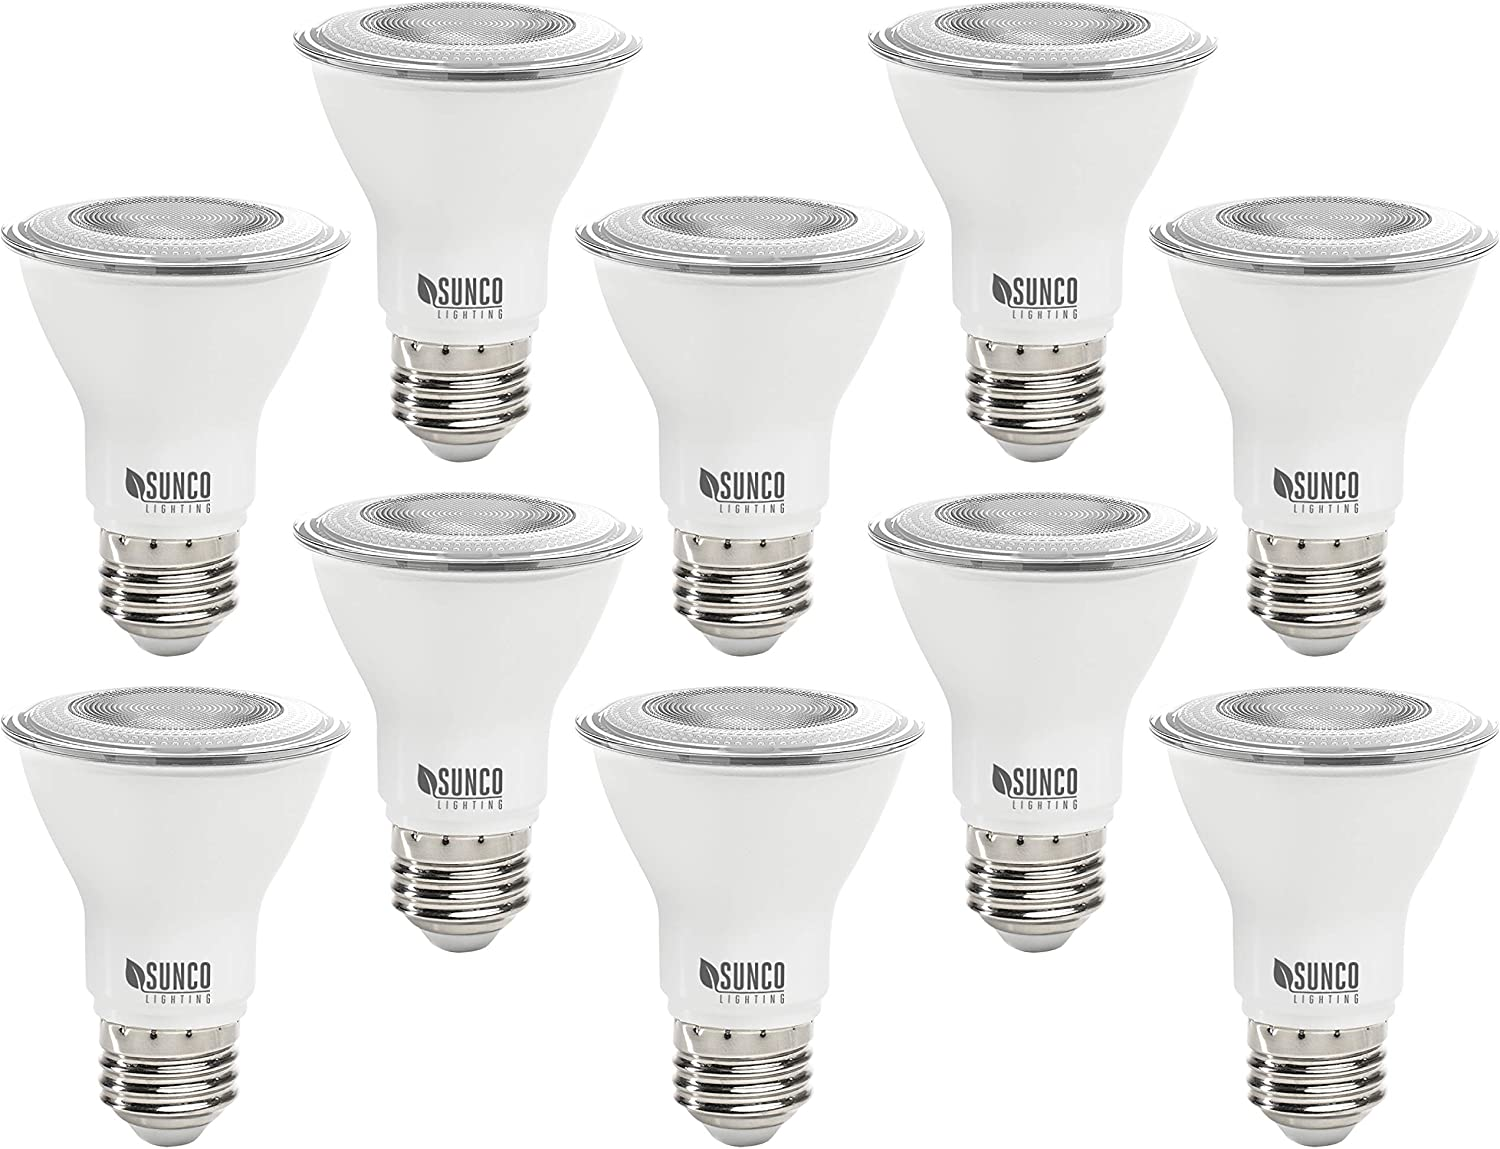 Sunco Lighting 10 Pack PAR20 LED Bulb, 7W=50W, Dimmable, 6000K Daylight Deluxe, E26 Base, Indoor/Outdoor Spotlight, Waterproof - UL & Energy Star